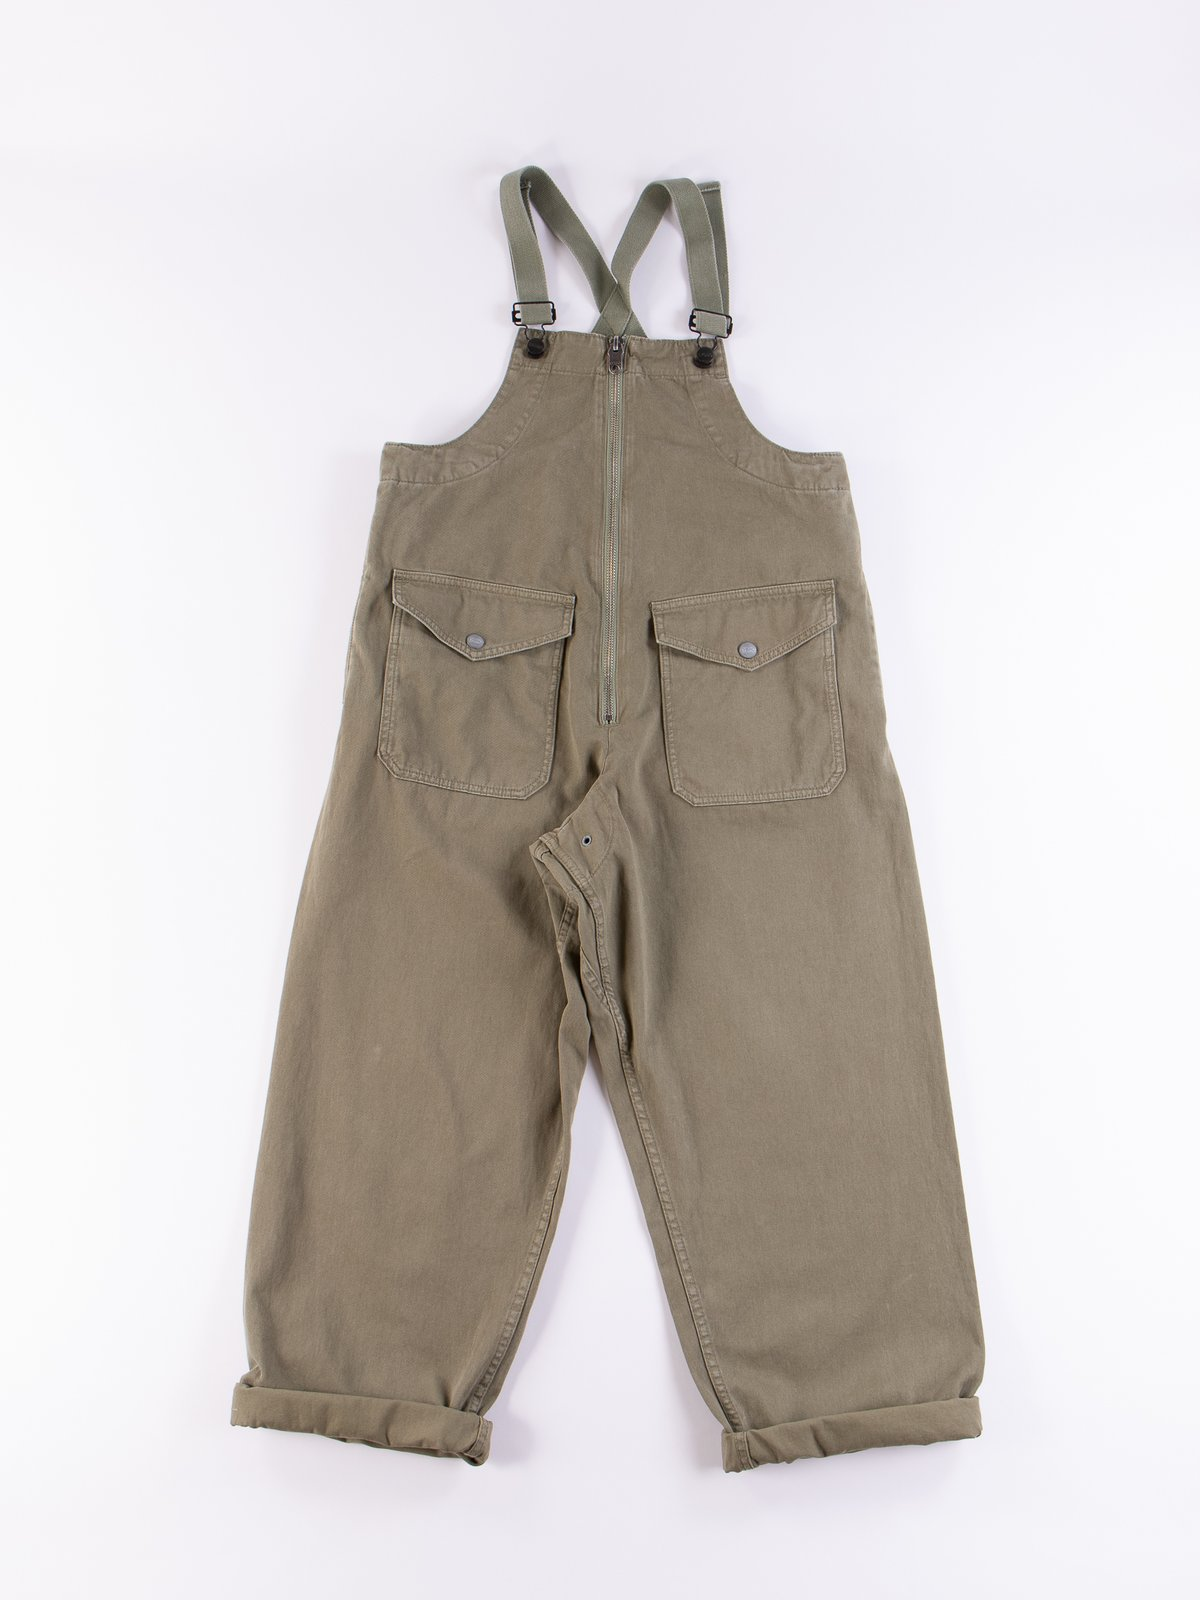 Lybro Washed Army Deck Waders - Image 1